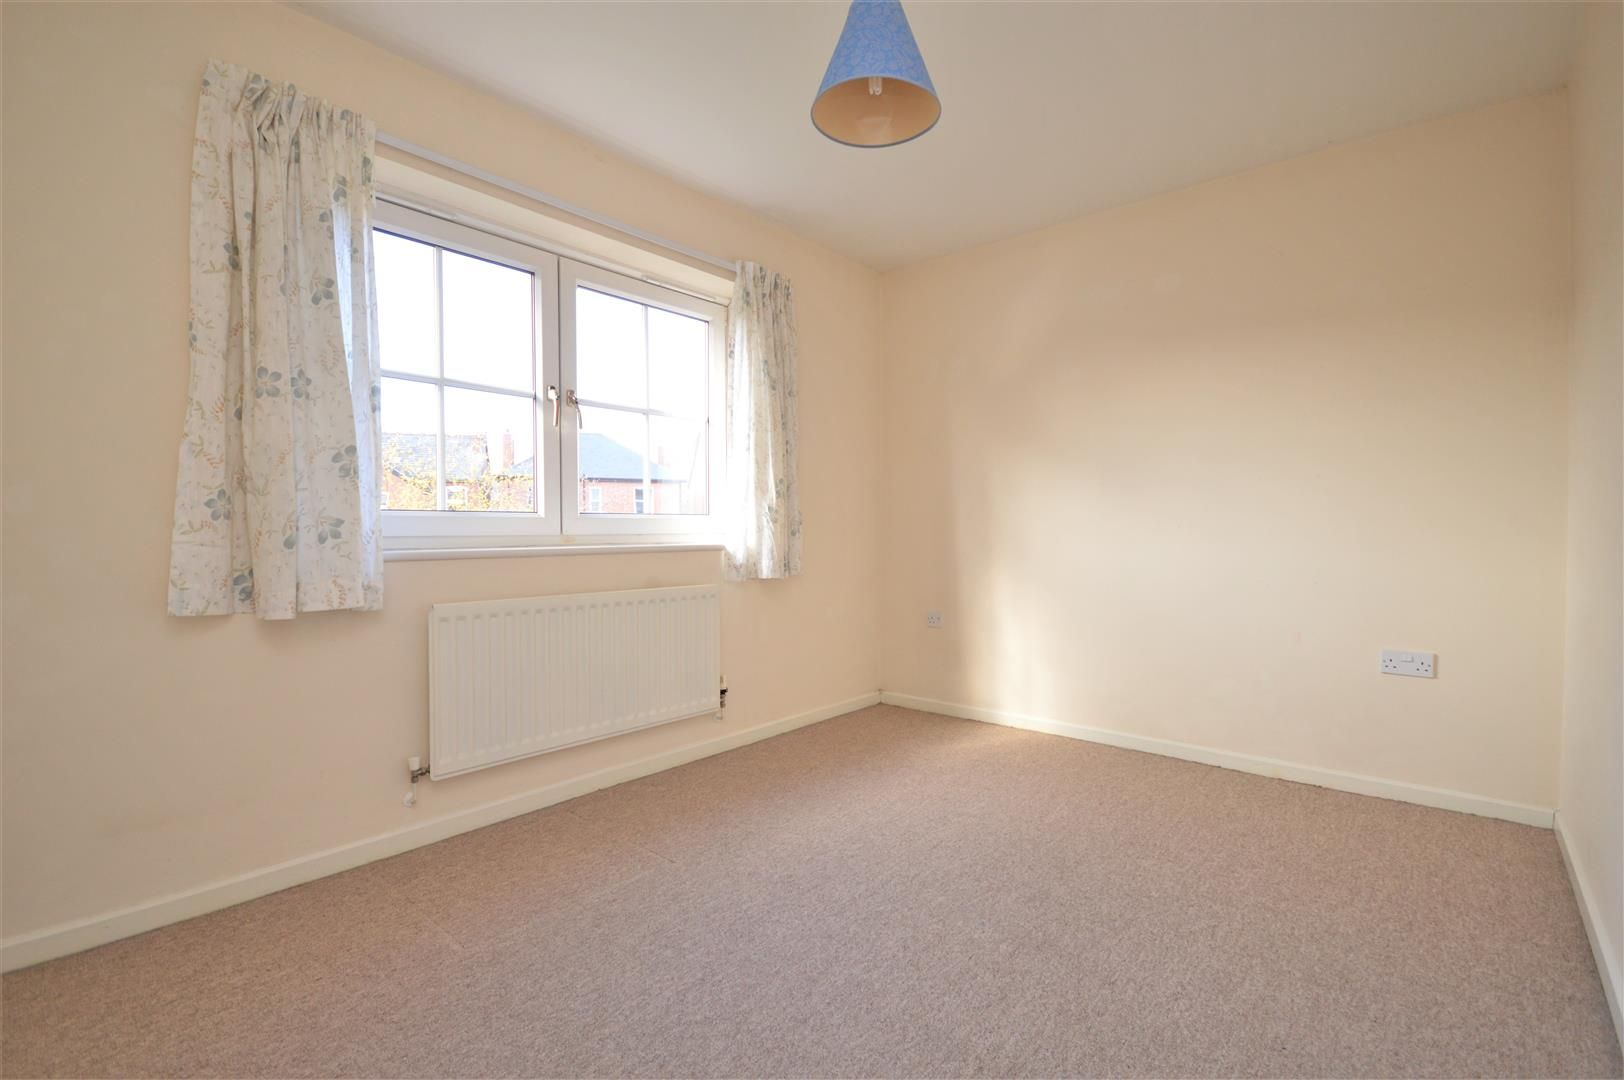 2 bed end-of-terrace for sale 8